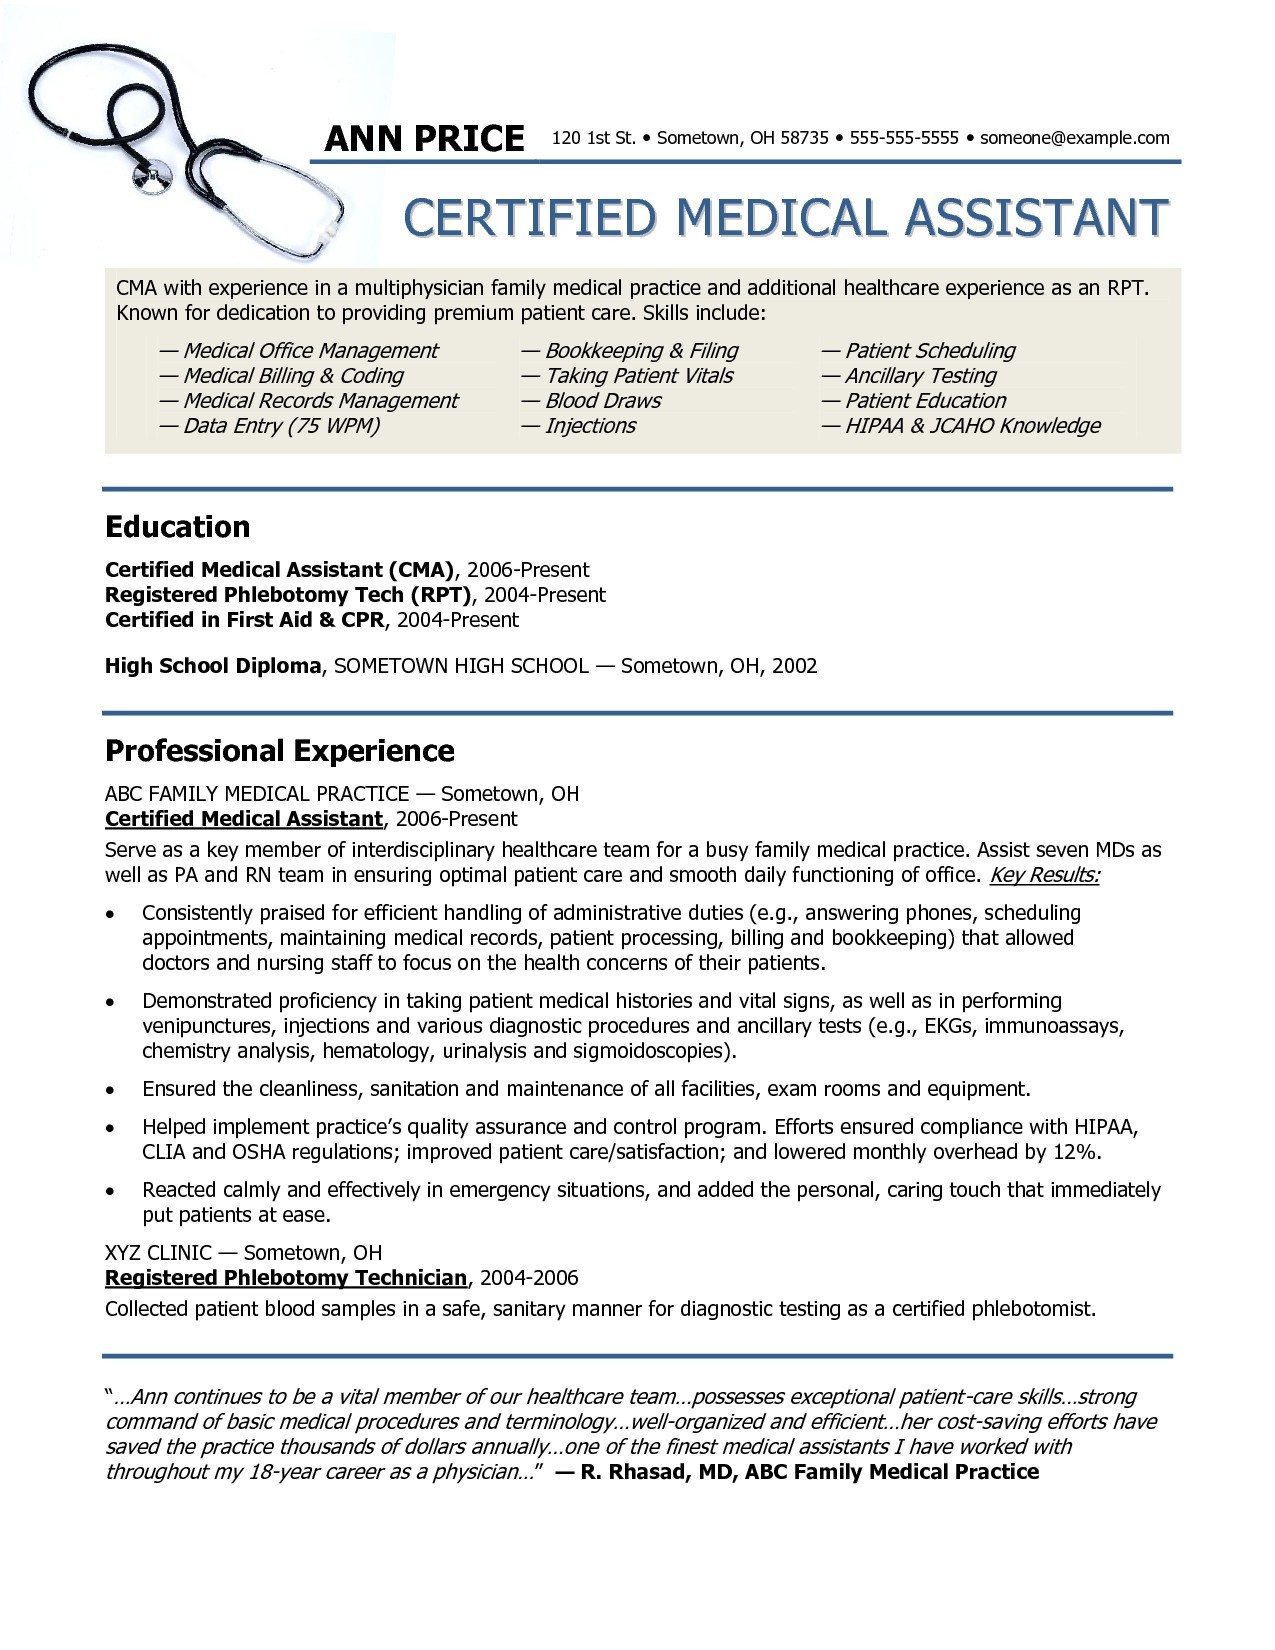 Medical School Application Resume - Medical Release Letter Template Examples